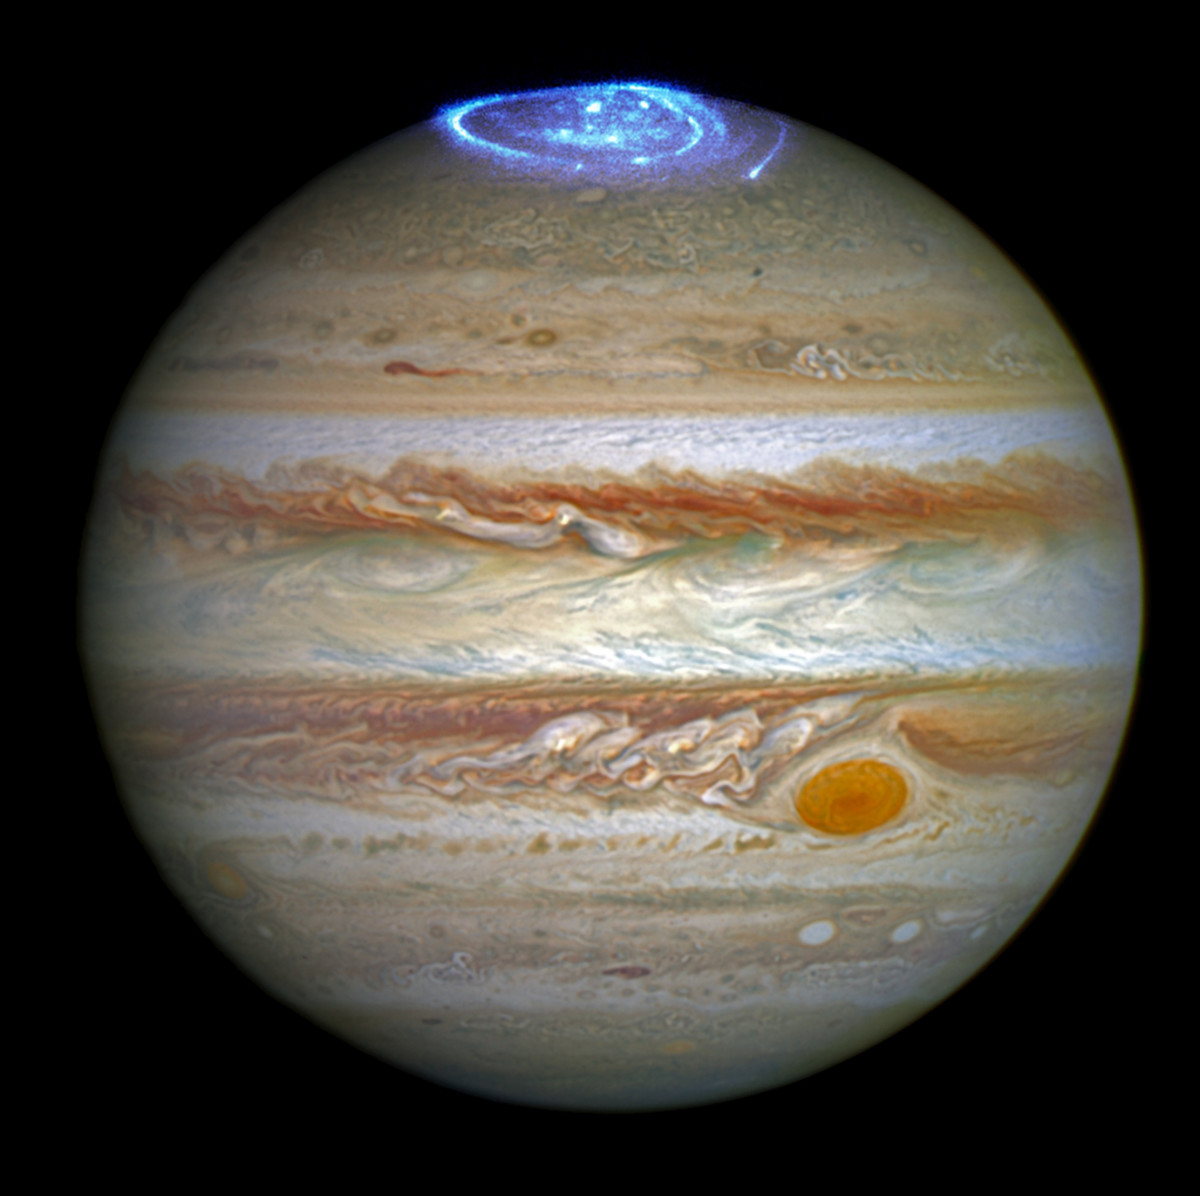 Image of Jupiter, 5th planet from the Sun, from the Hubble telescope.